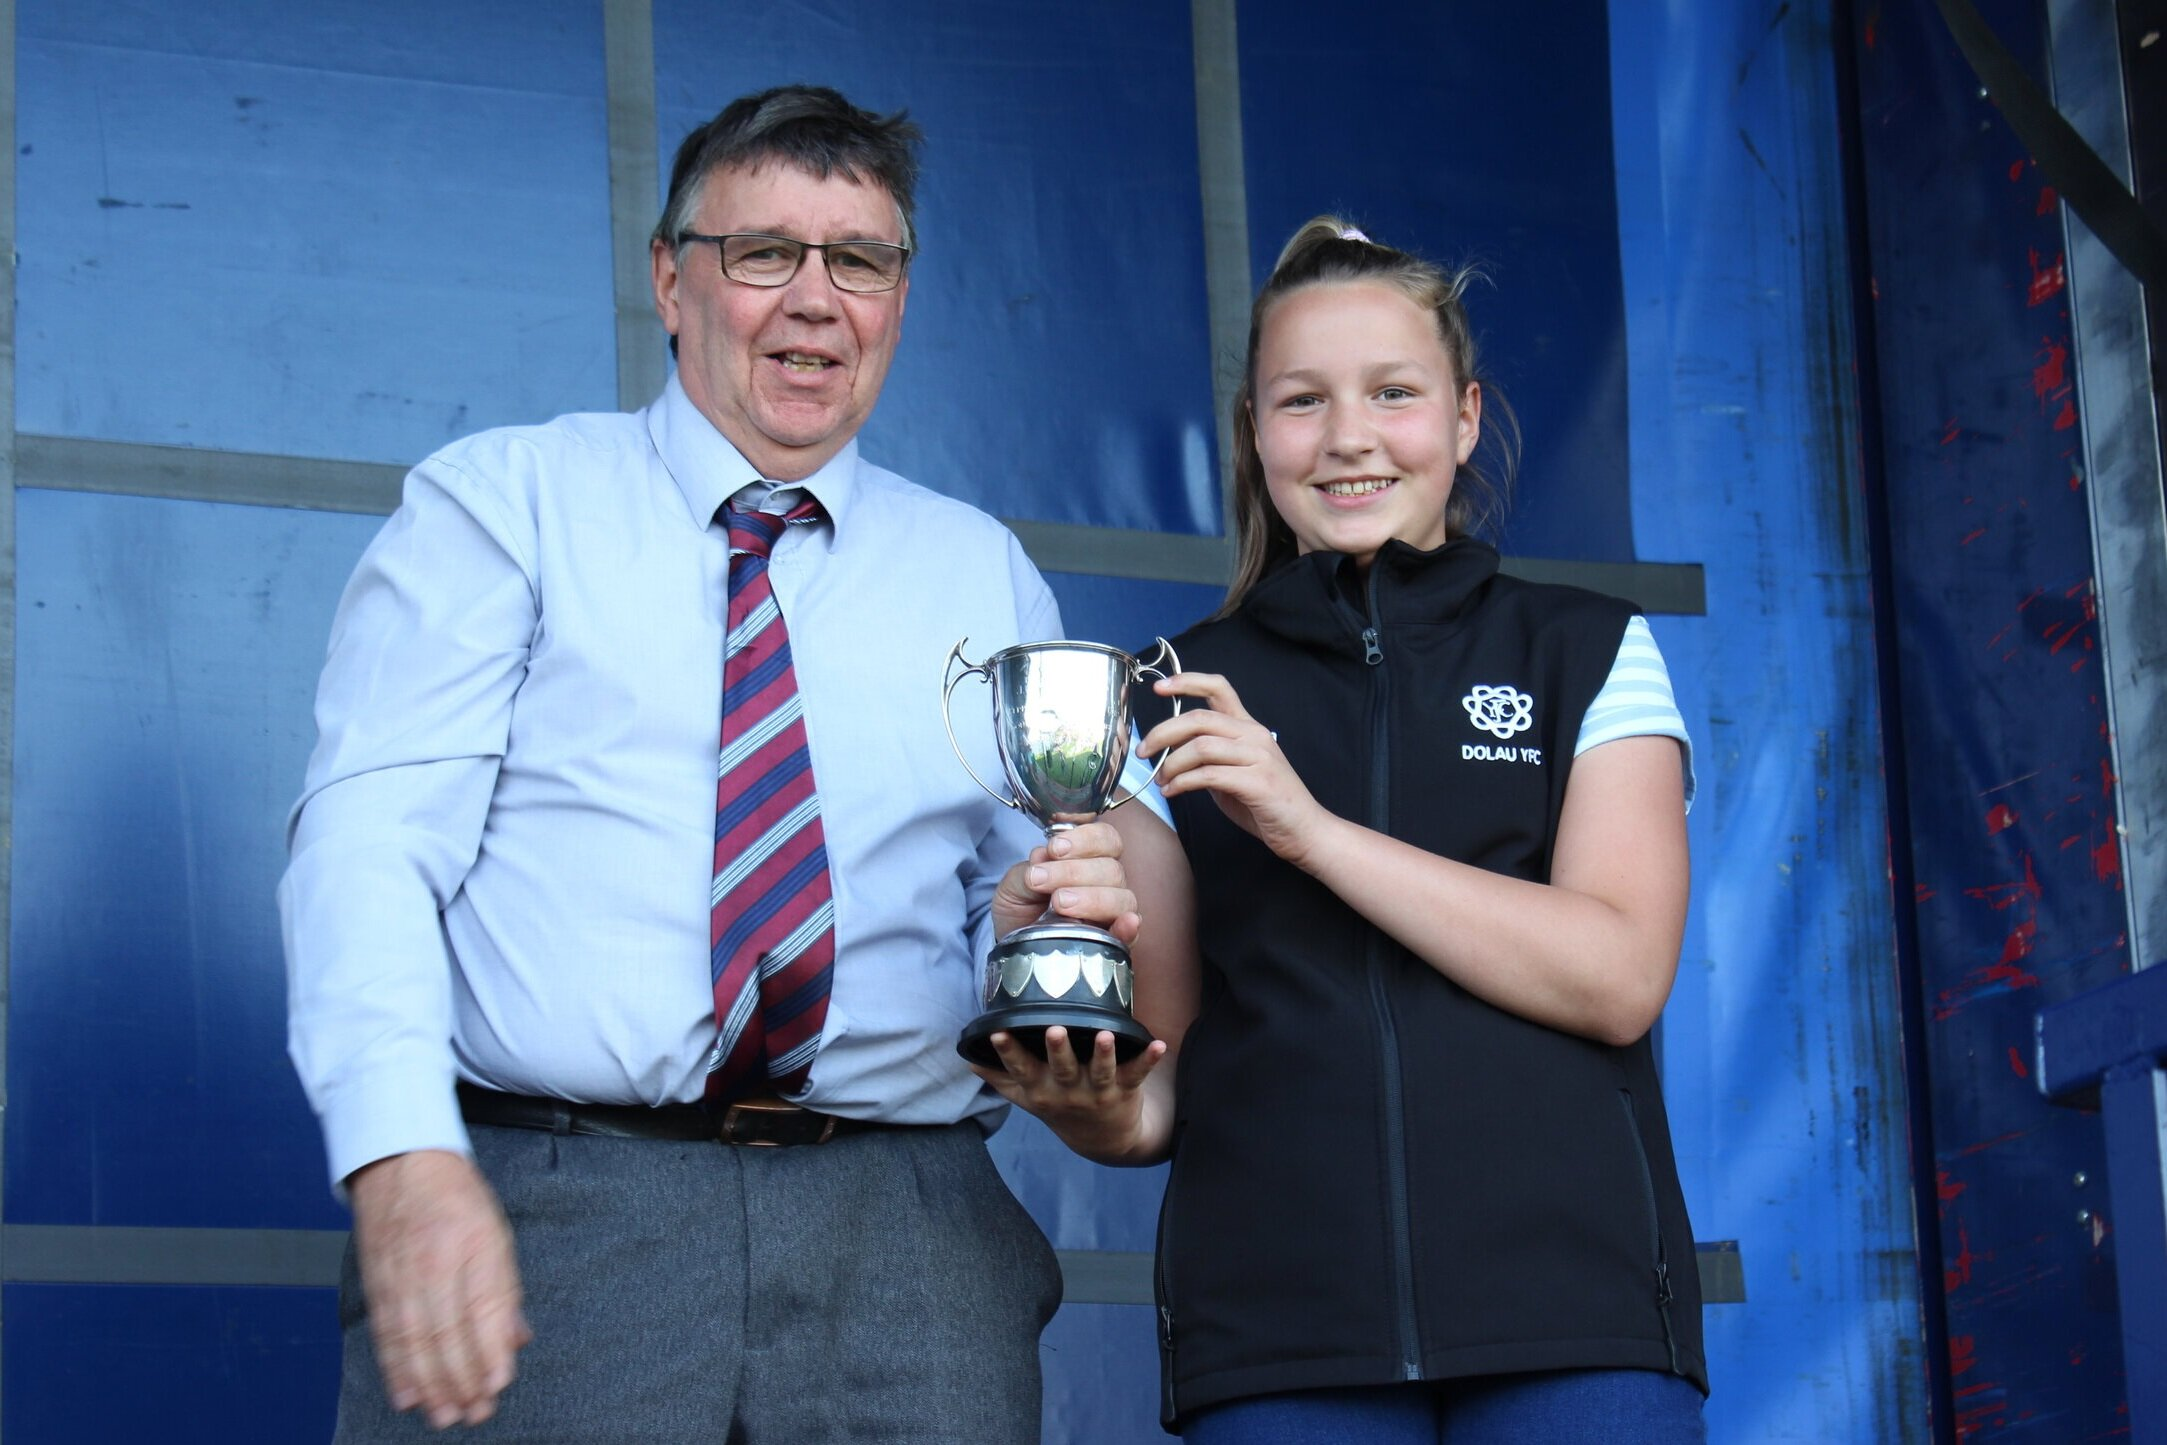 Mervyn Thomas presenting Nia Thomas, Dolau YFC with the 'J&P Turner' trophy for the highest marks gained in Class 1.